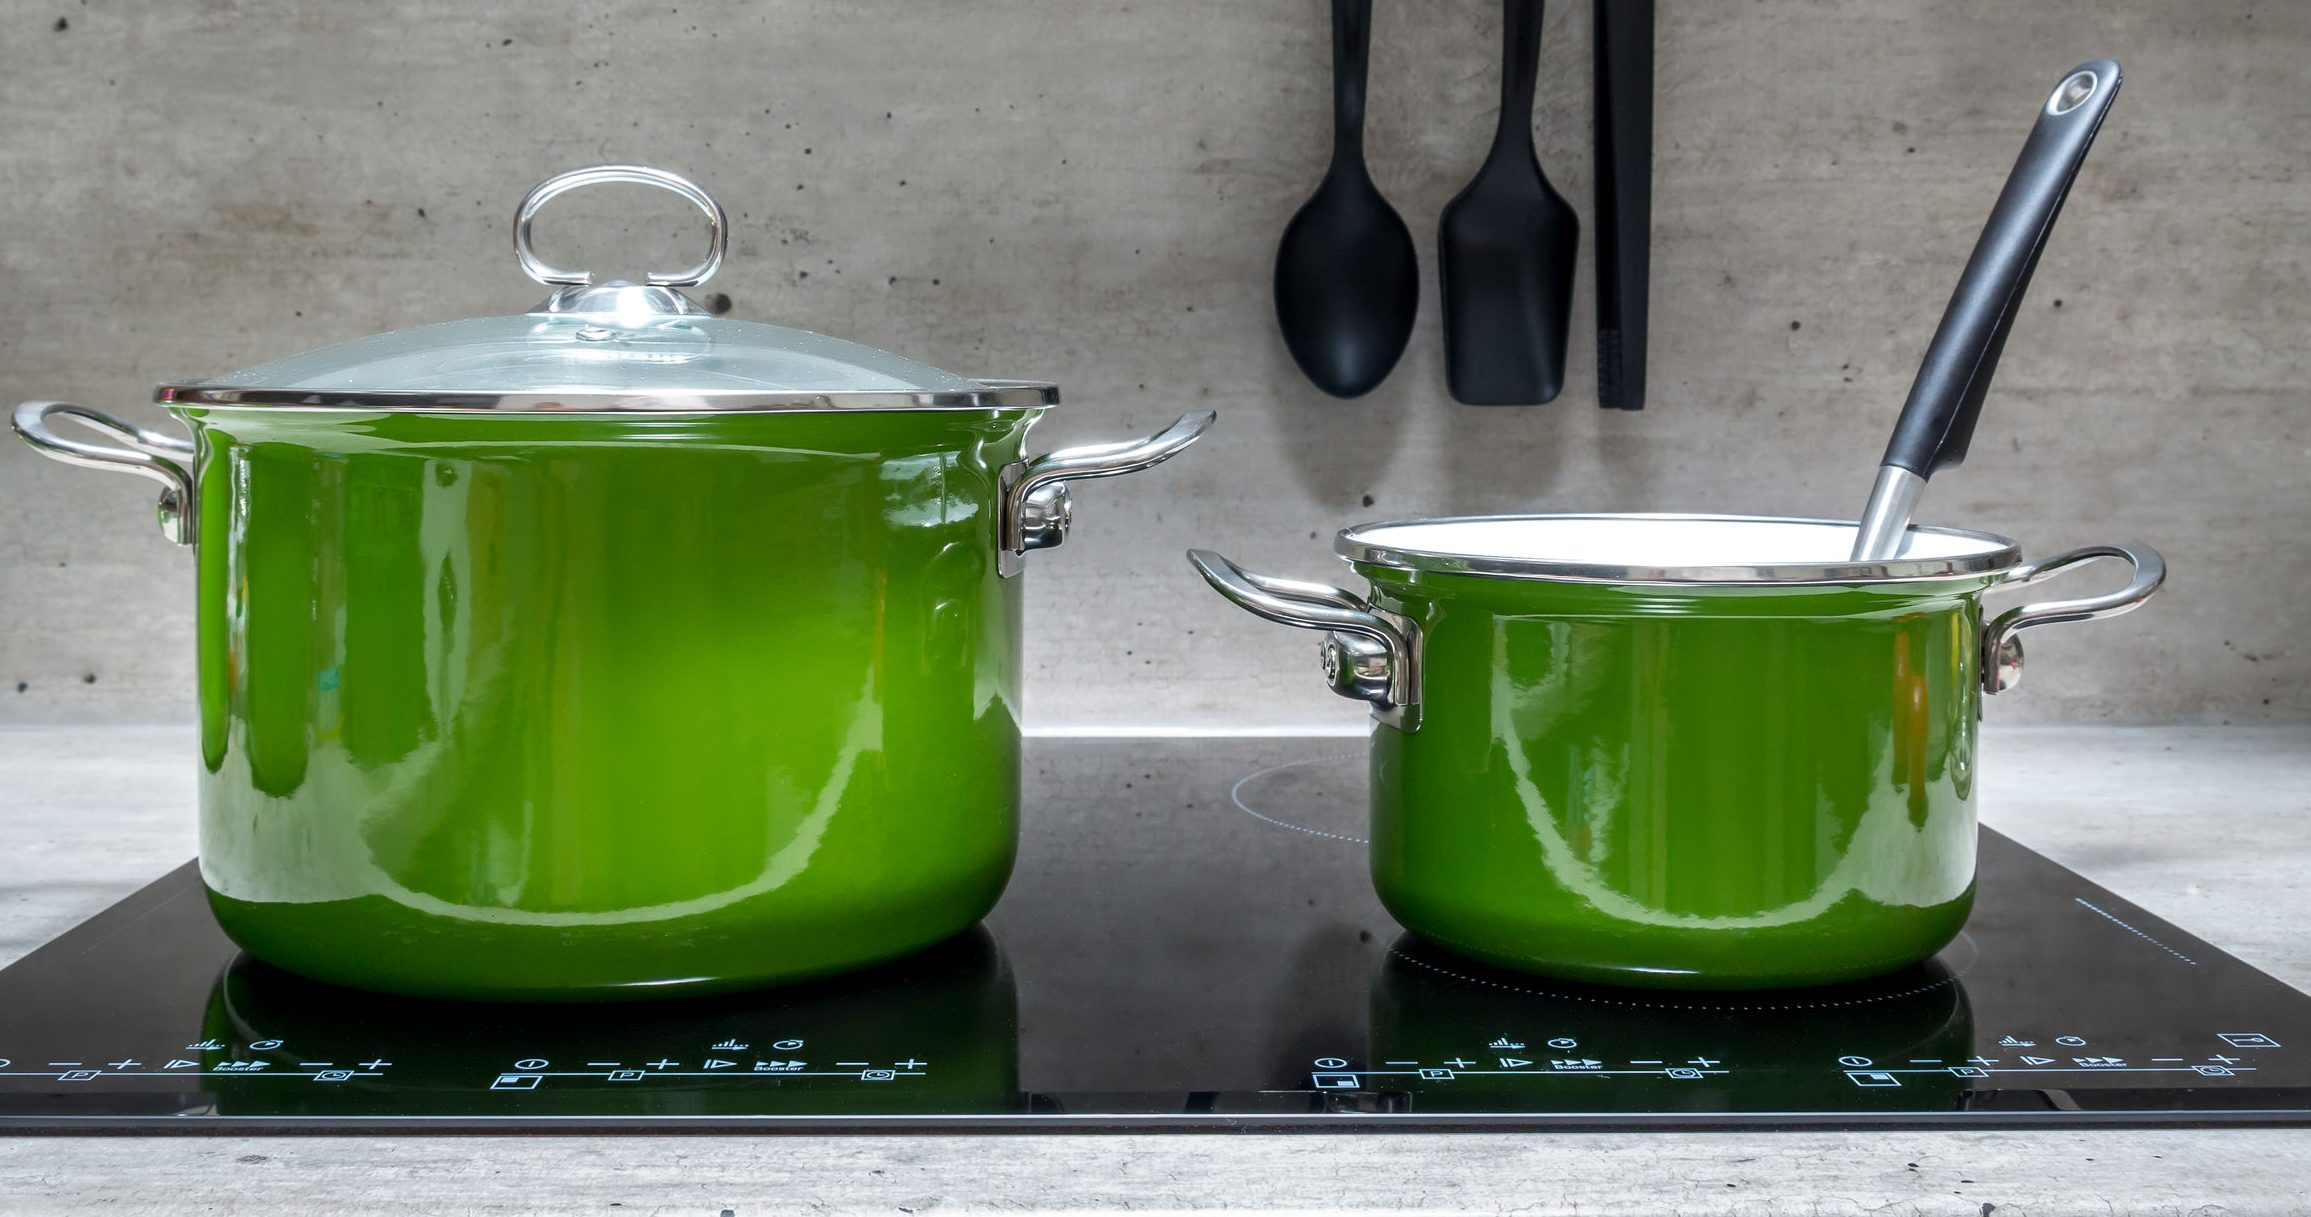 Two stewpots on induction cooker